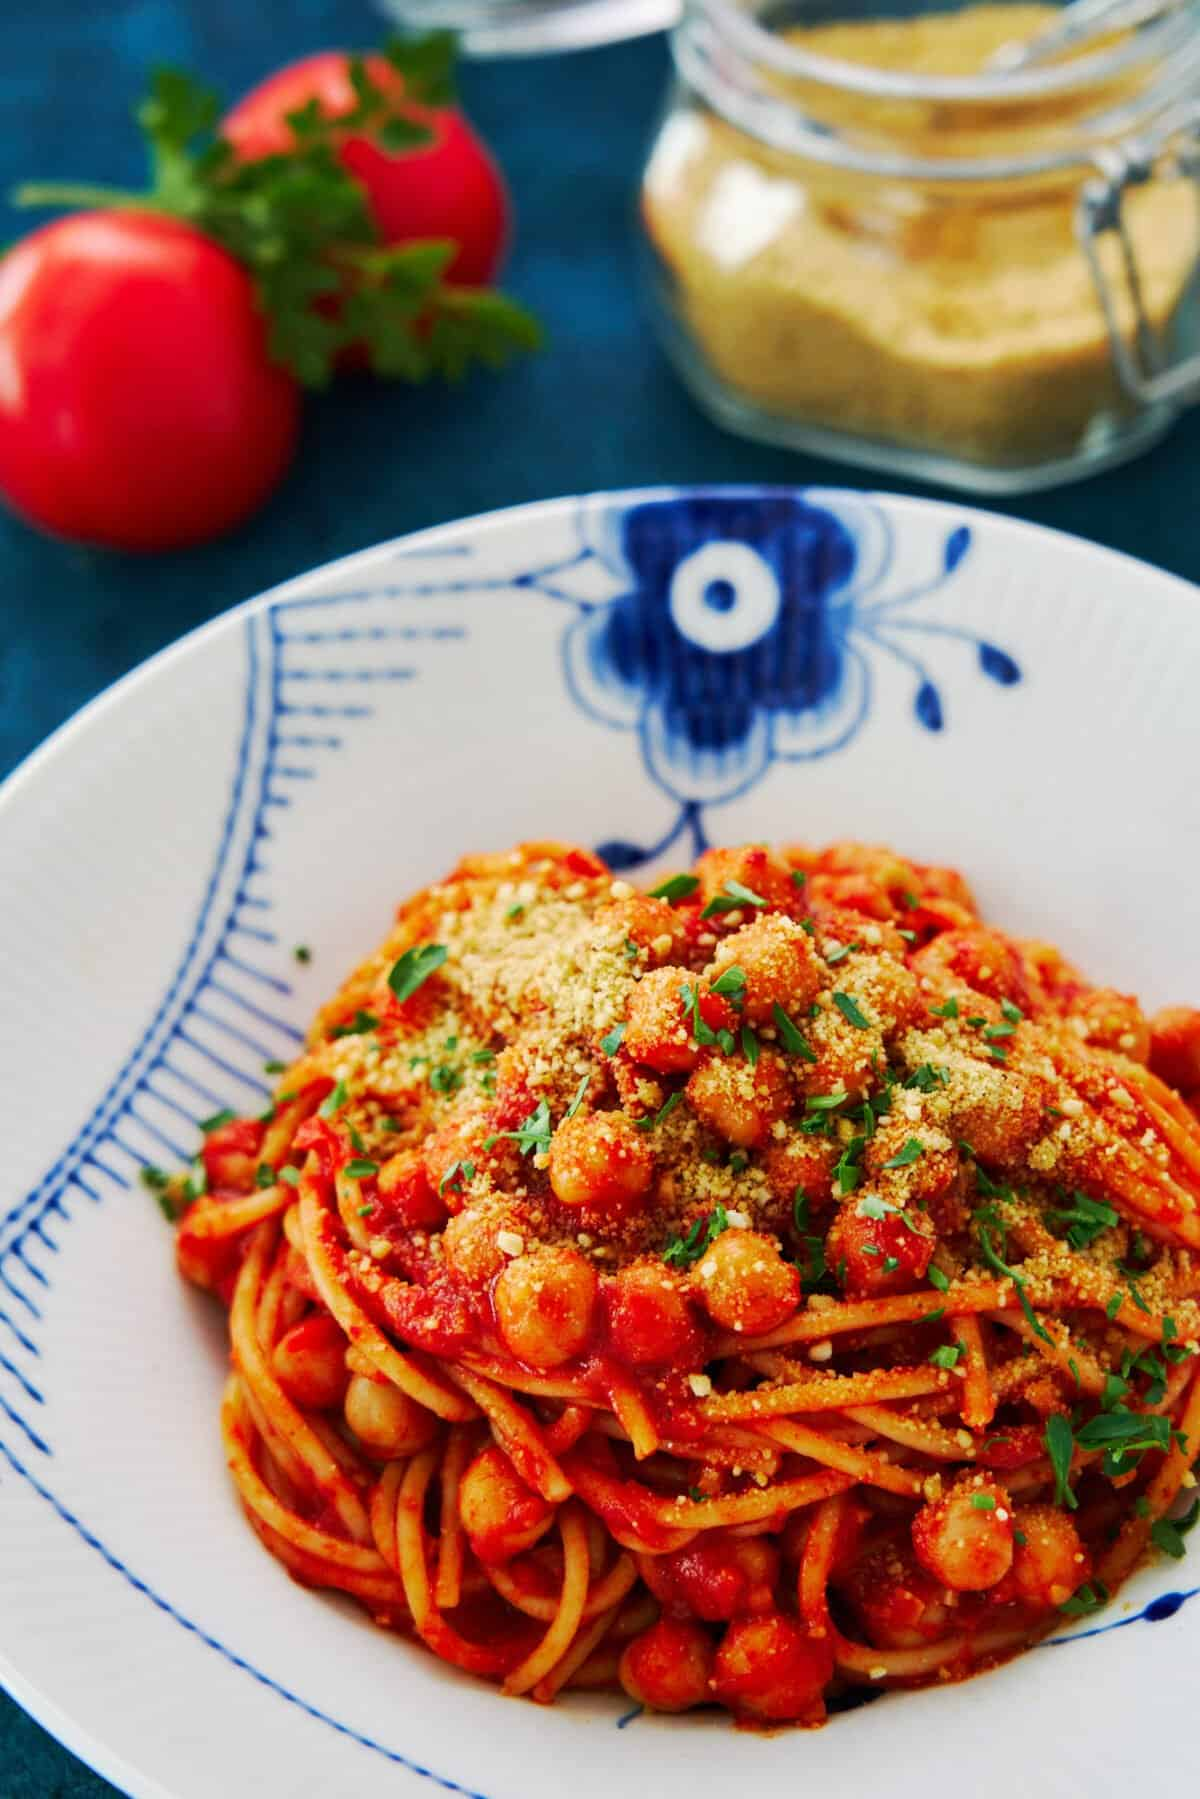 This spicy Chickpea Spaghetti recipe comes together in 10 minutes from a handful of pantry staples. The best part is that it's super versatile, so you can adapt it based on what you have.